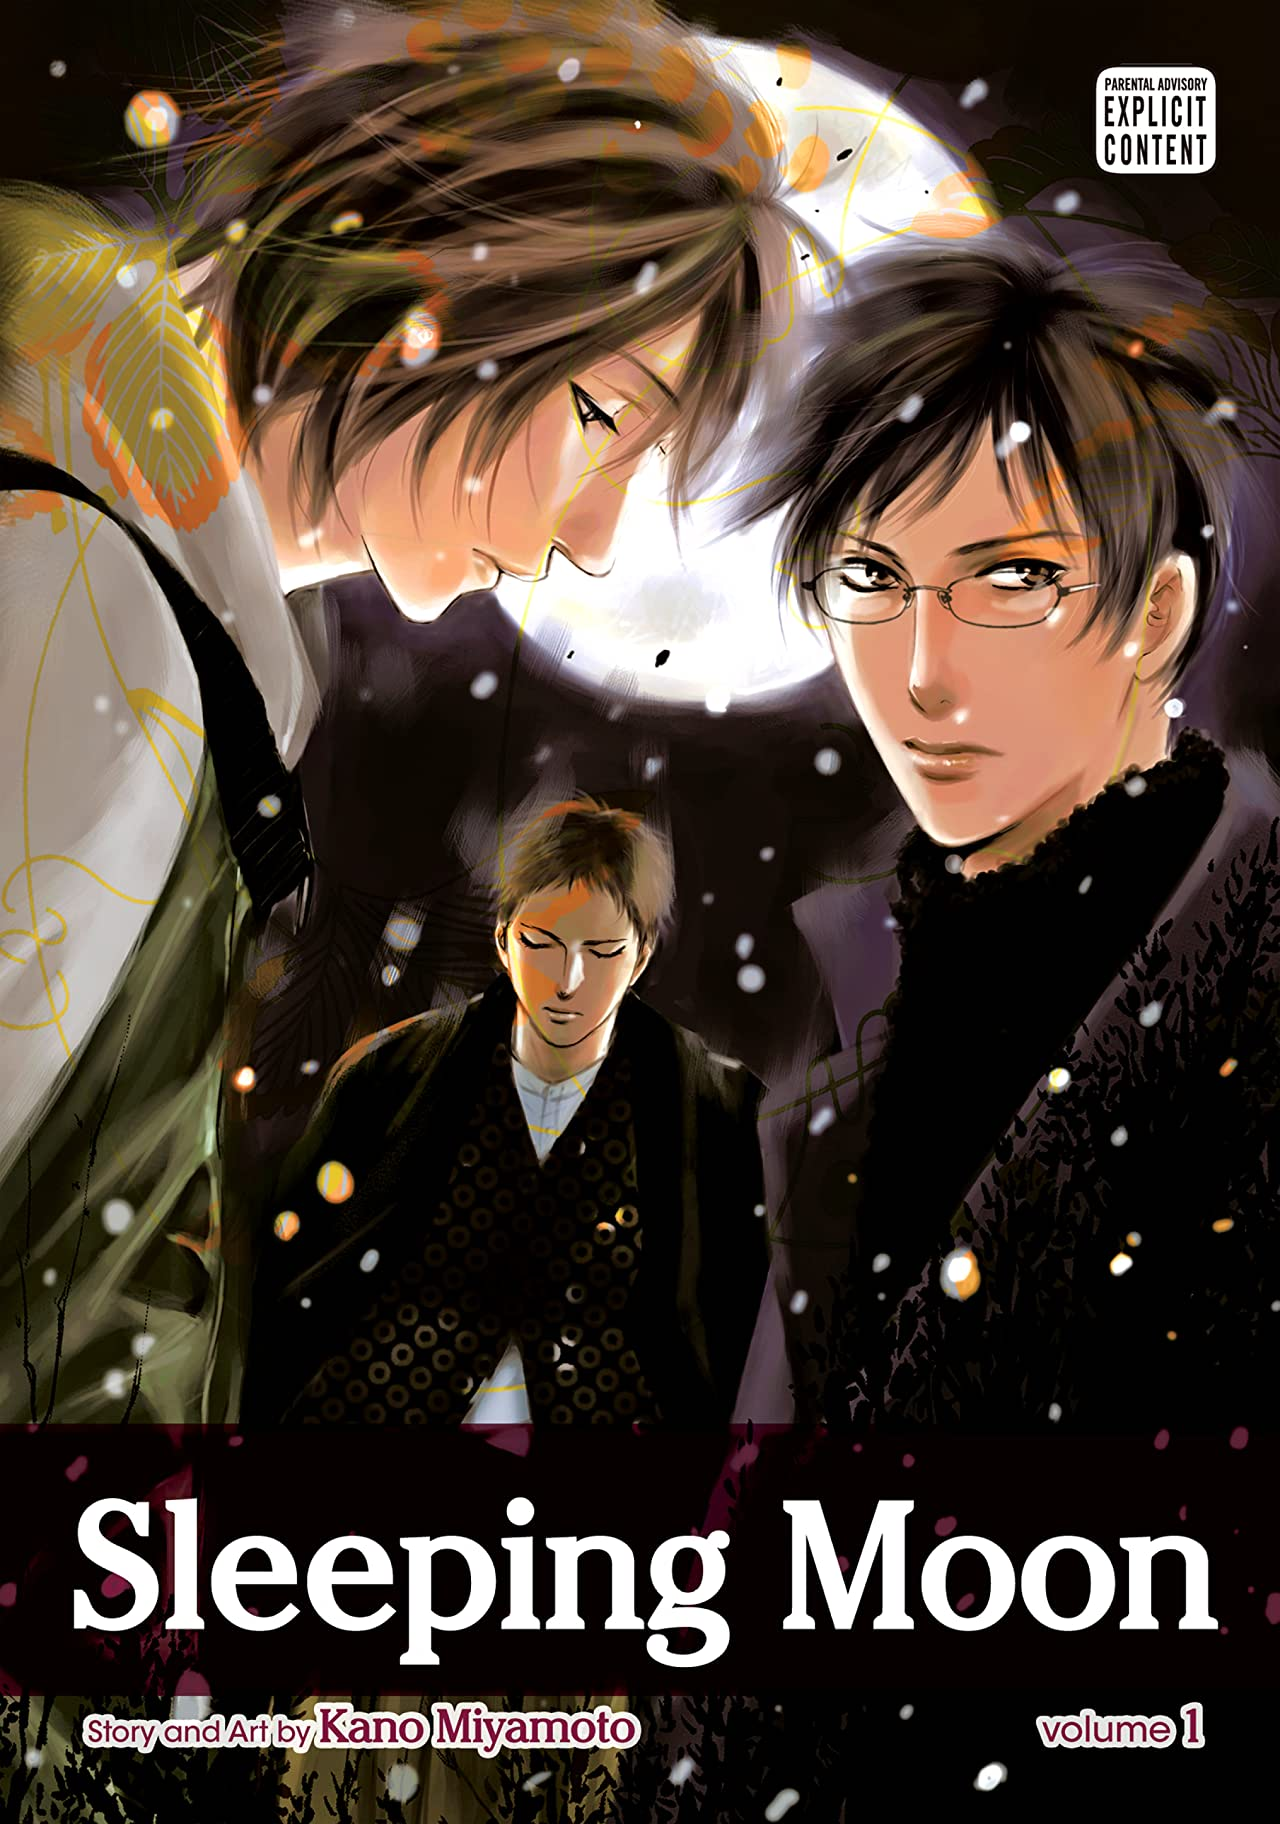 Sleeping Moon Vol. 1